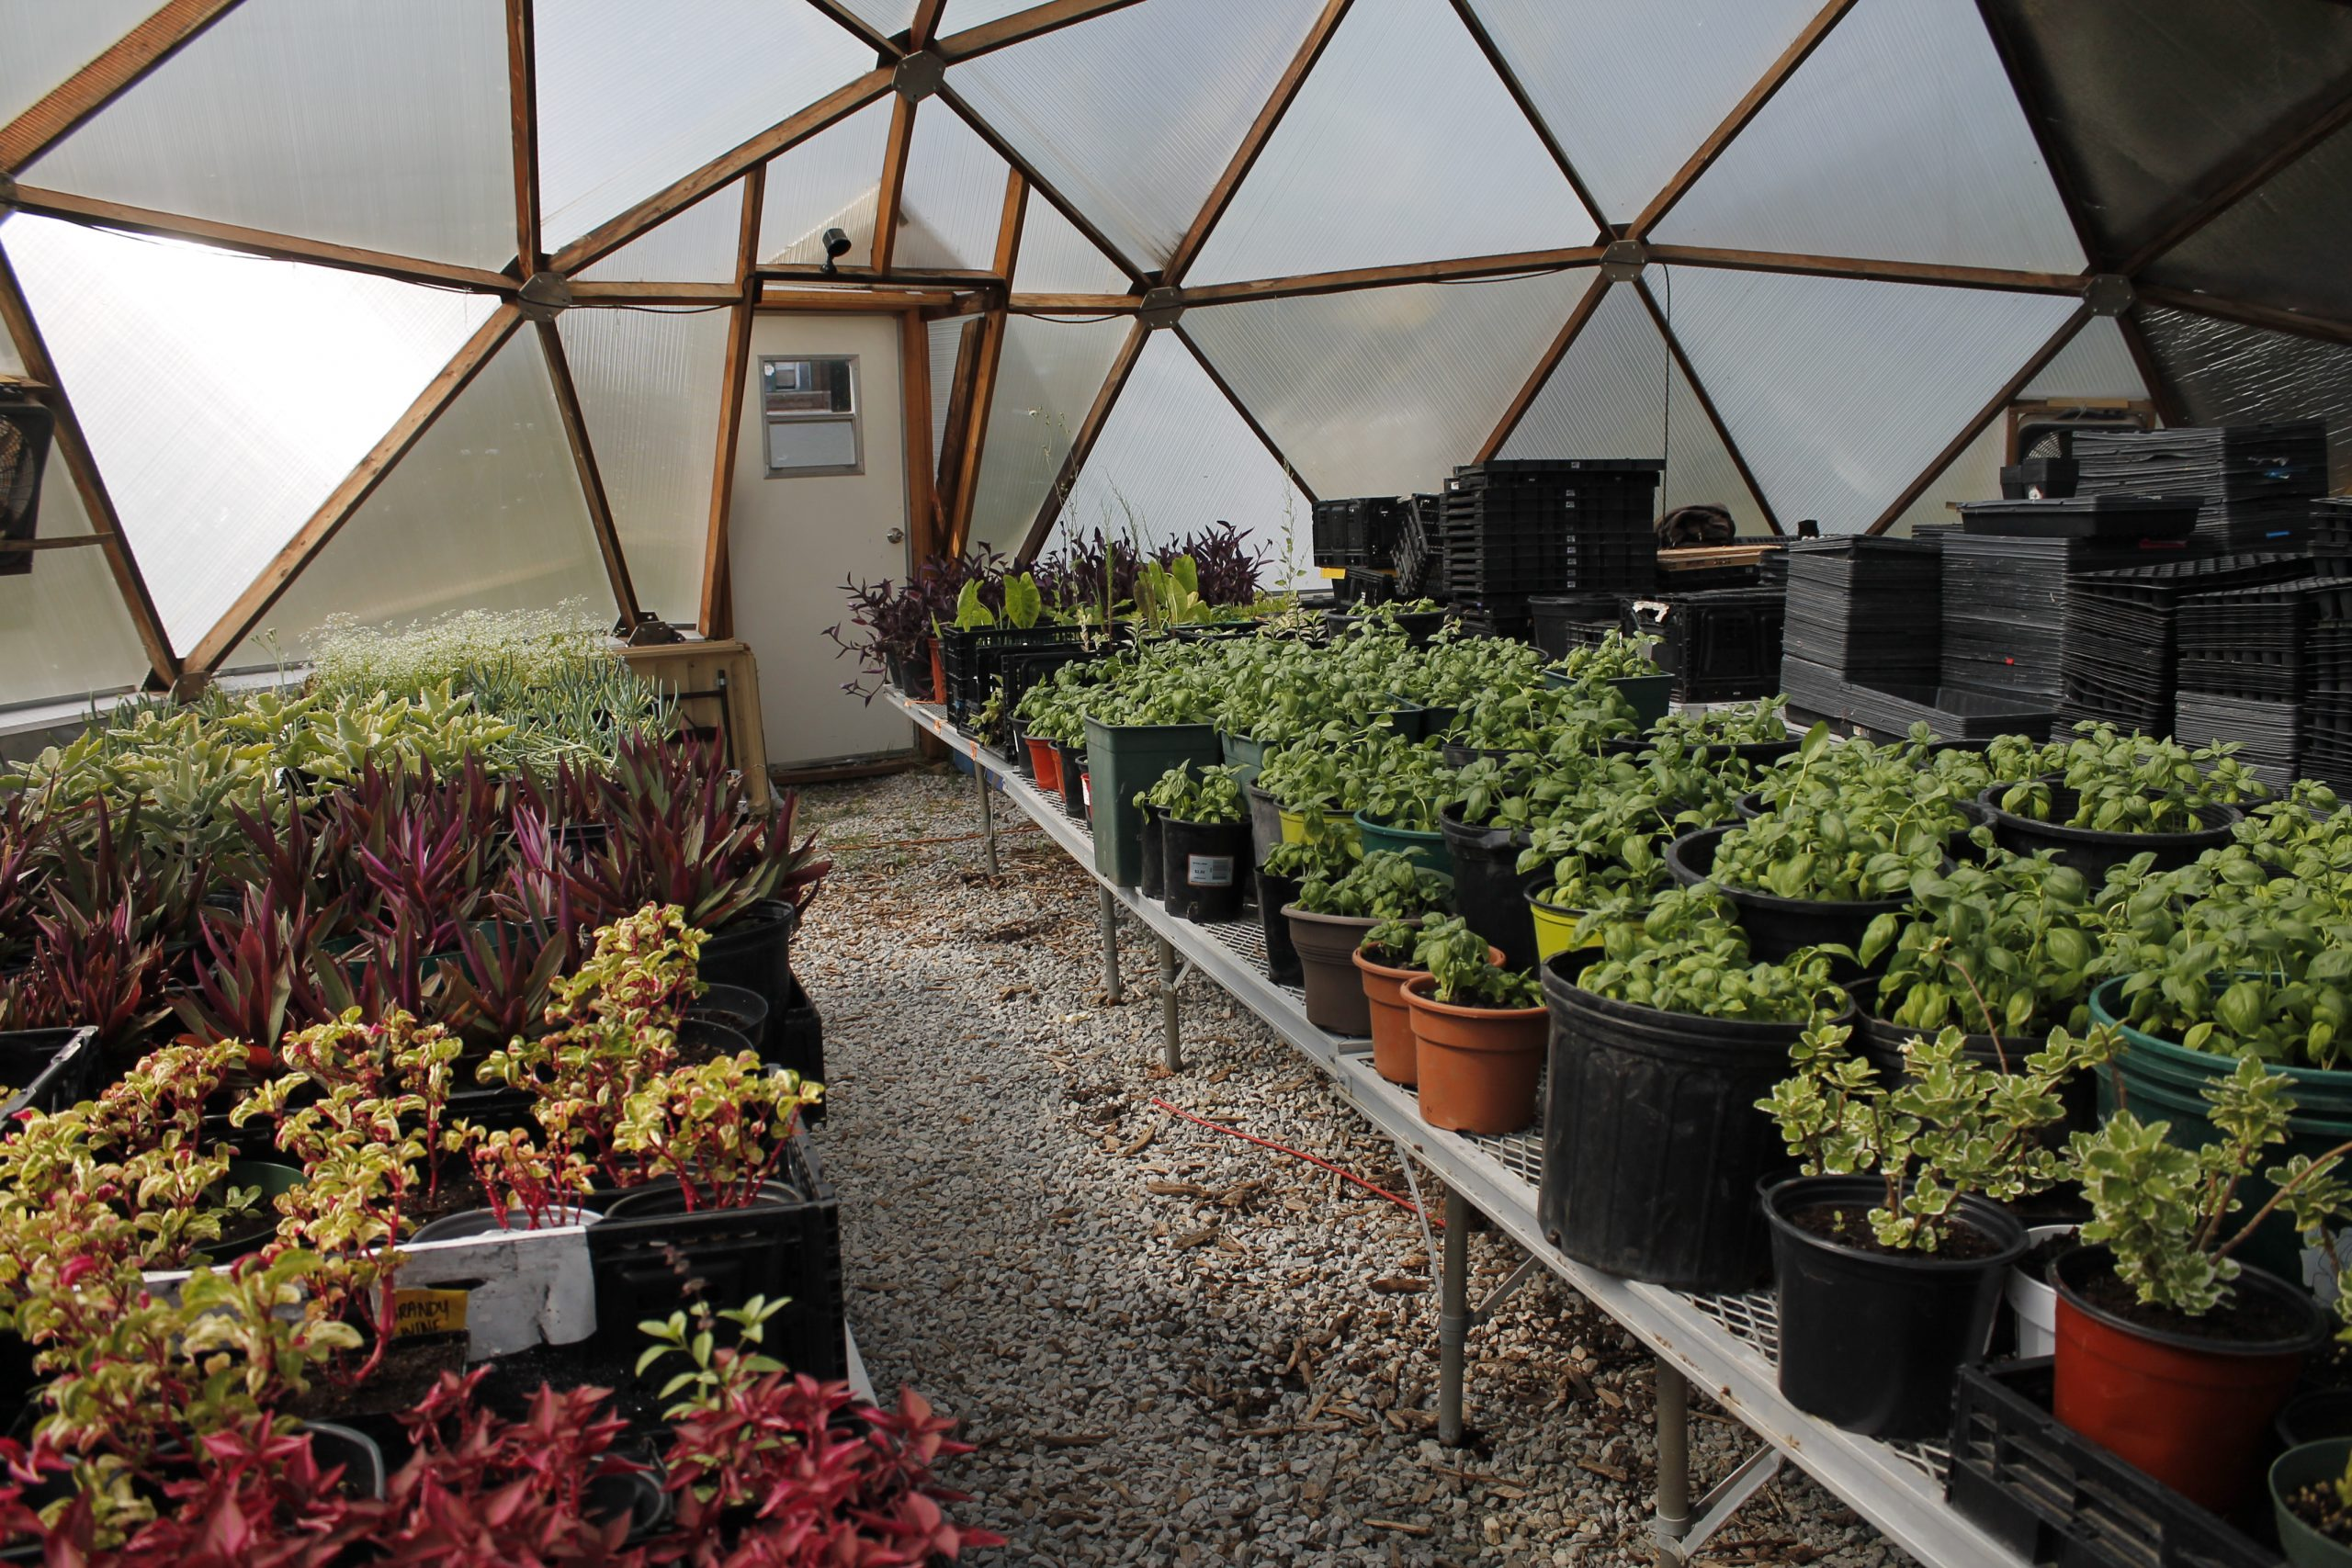 A geodesic dome built in 2017 at the South Chicago UGC farm has been helping the collective and its partners grow produce year-round.